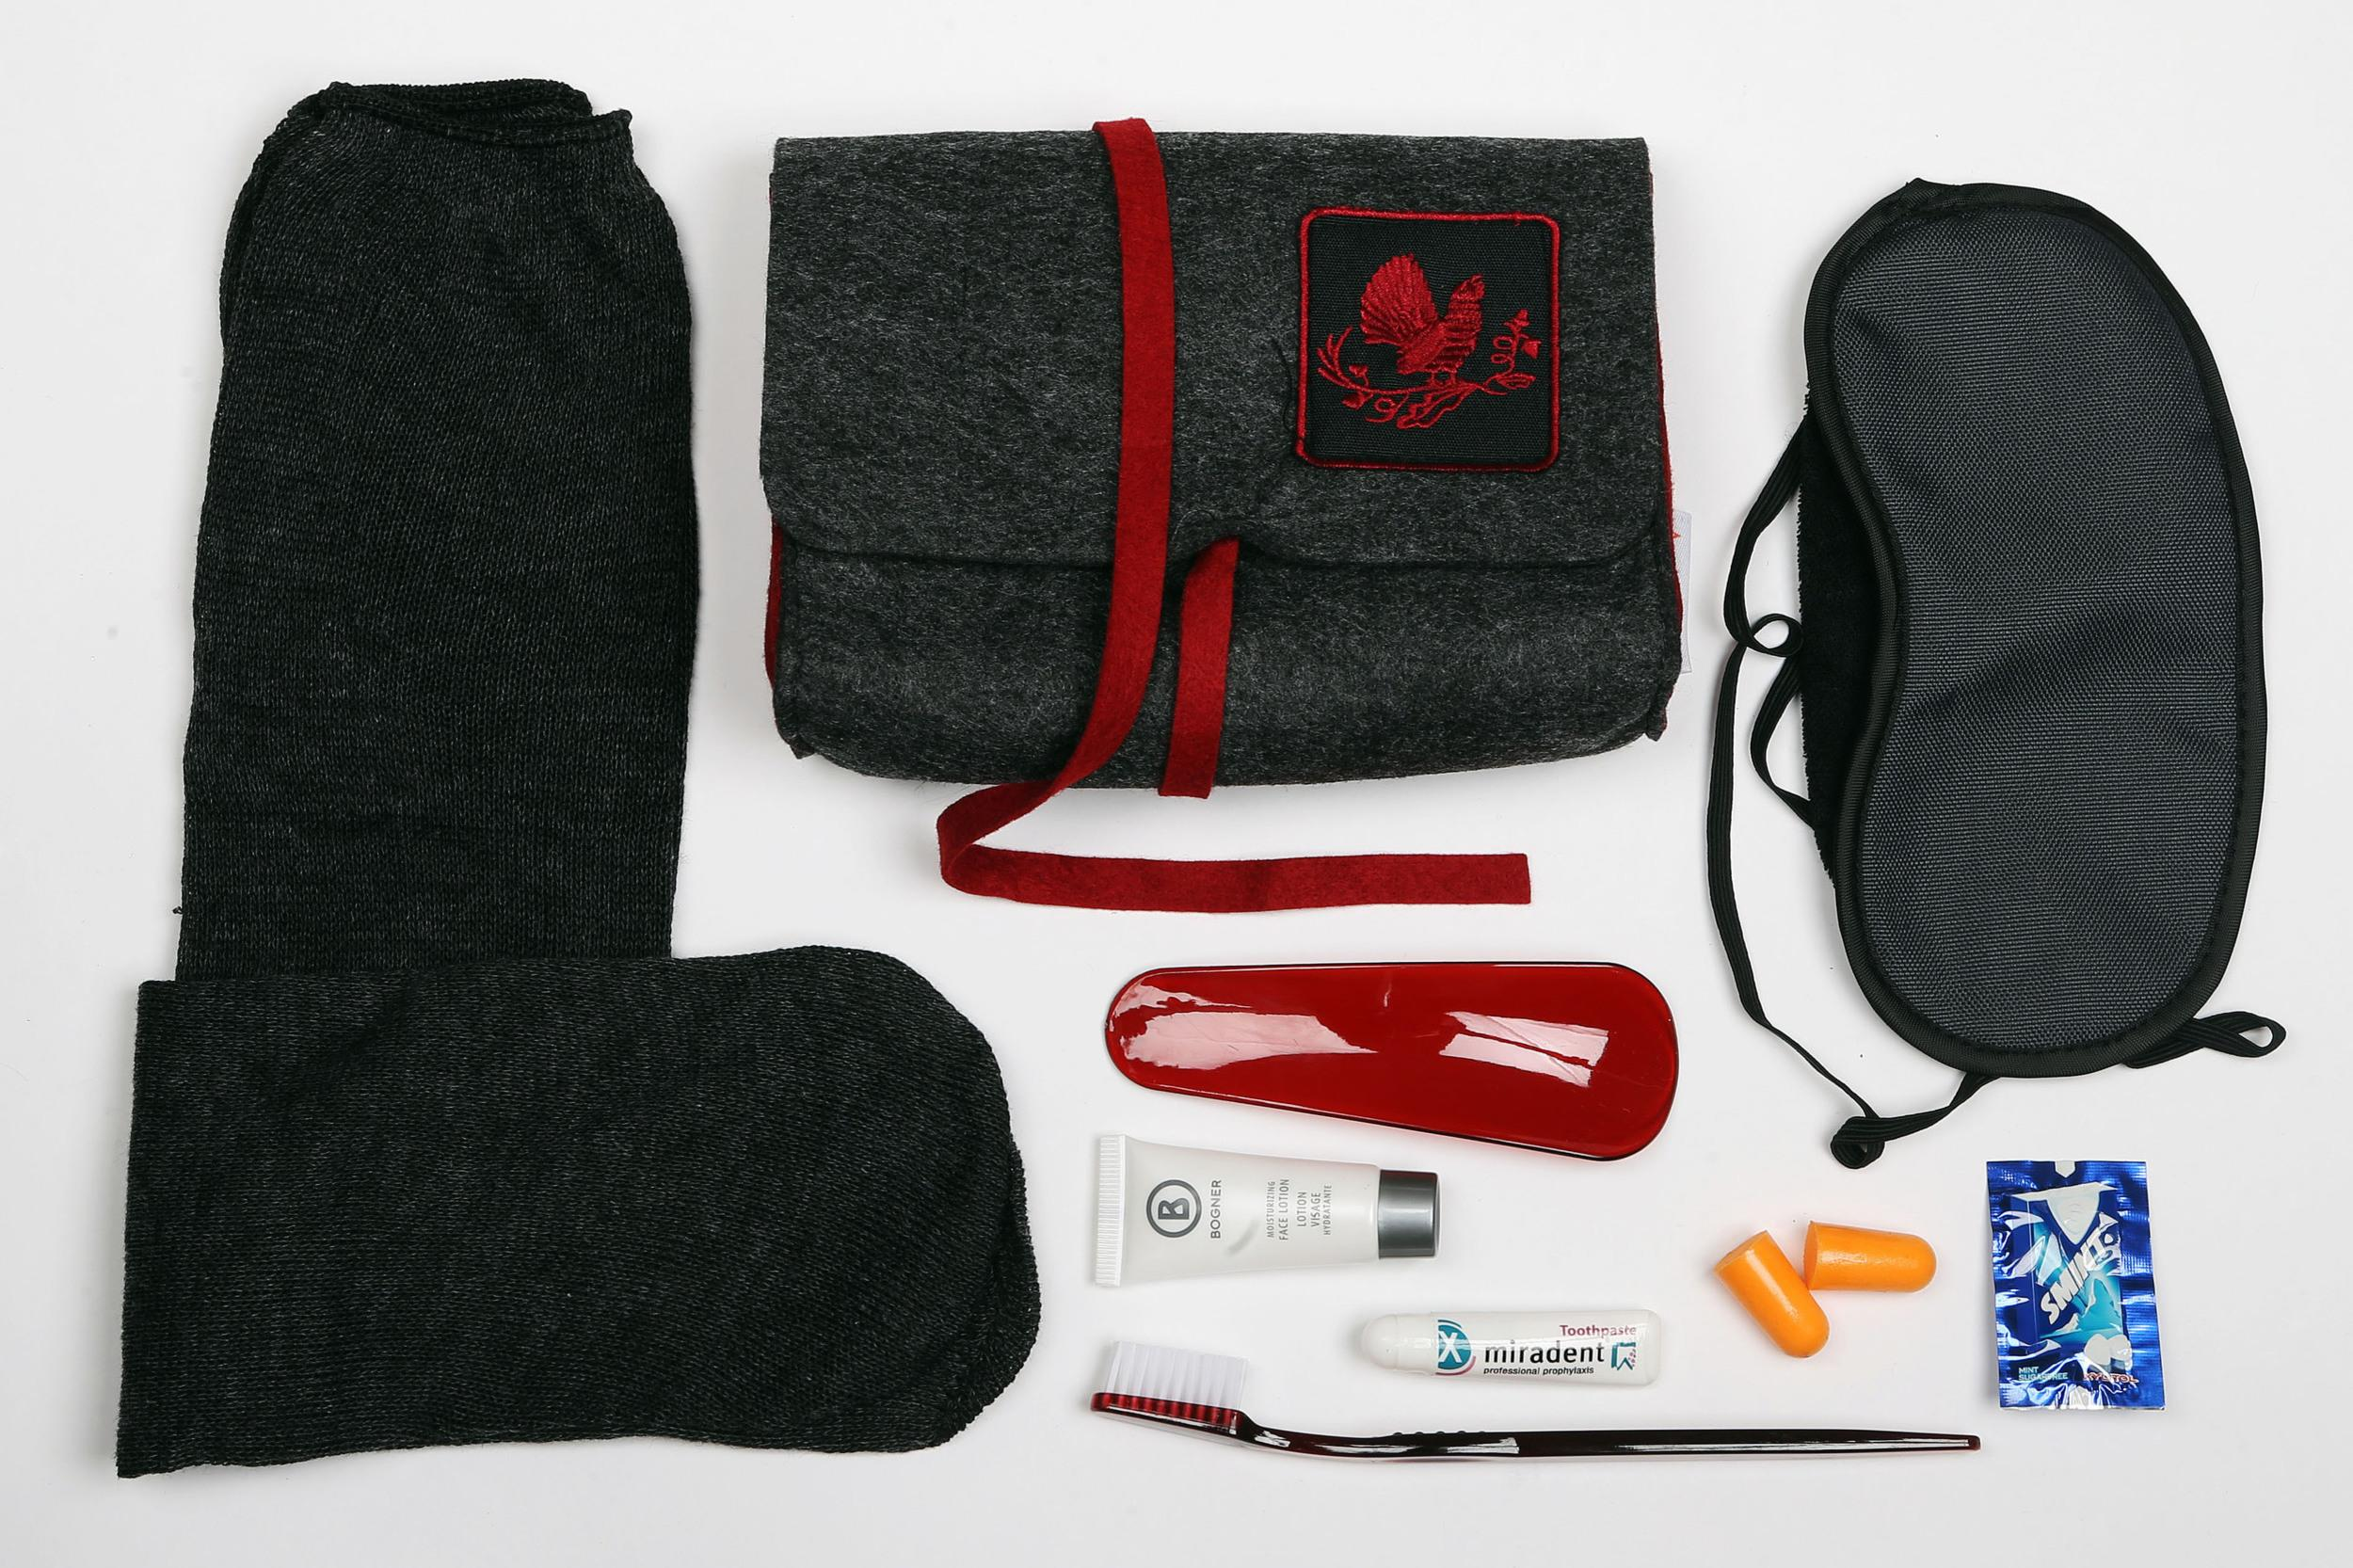 """<p><strong>What do you get?</strong> Pair of socks, eye mask, toothbrush, shoe horn, ear plugs, mini face lotion, mints, a gift voucher of €25 to spend on <a href=""""http://bogner.com"""" target=""""_blank"""">bogner.com</a>.<br /> <strong>Best bit of kit?</strong> The bag. It's soft, elegant and beautifully produced.</p>"""